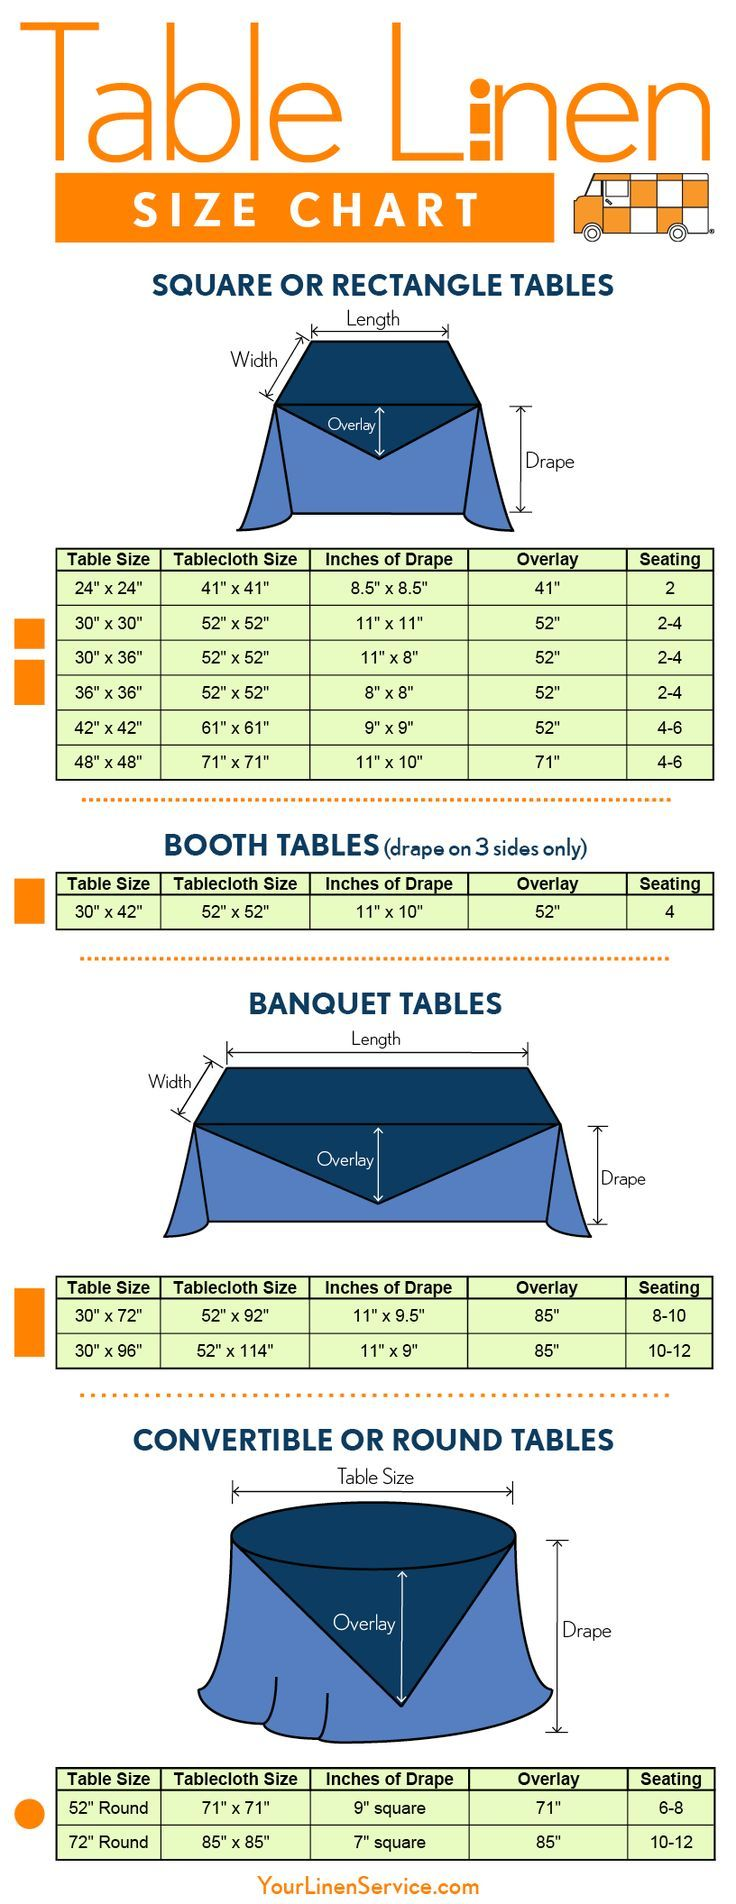 Table linen size chart. Square, rectangle, circle and banquet tablecloth sizes and overlay sizes reference.